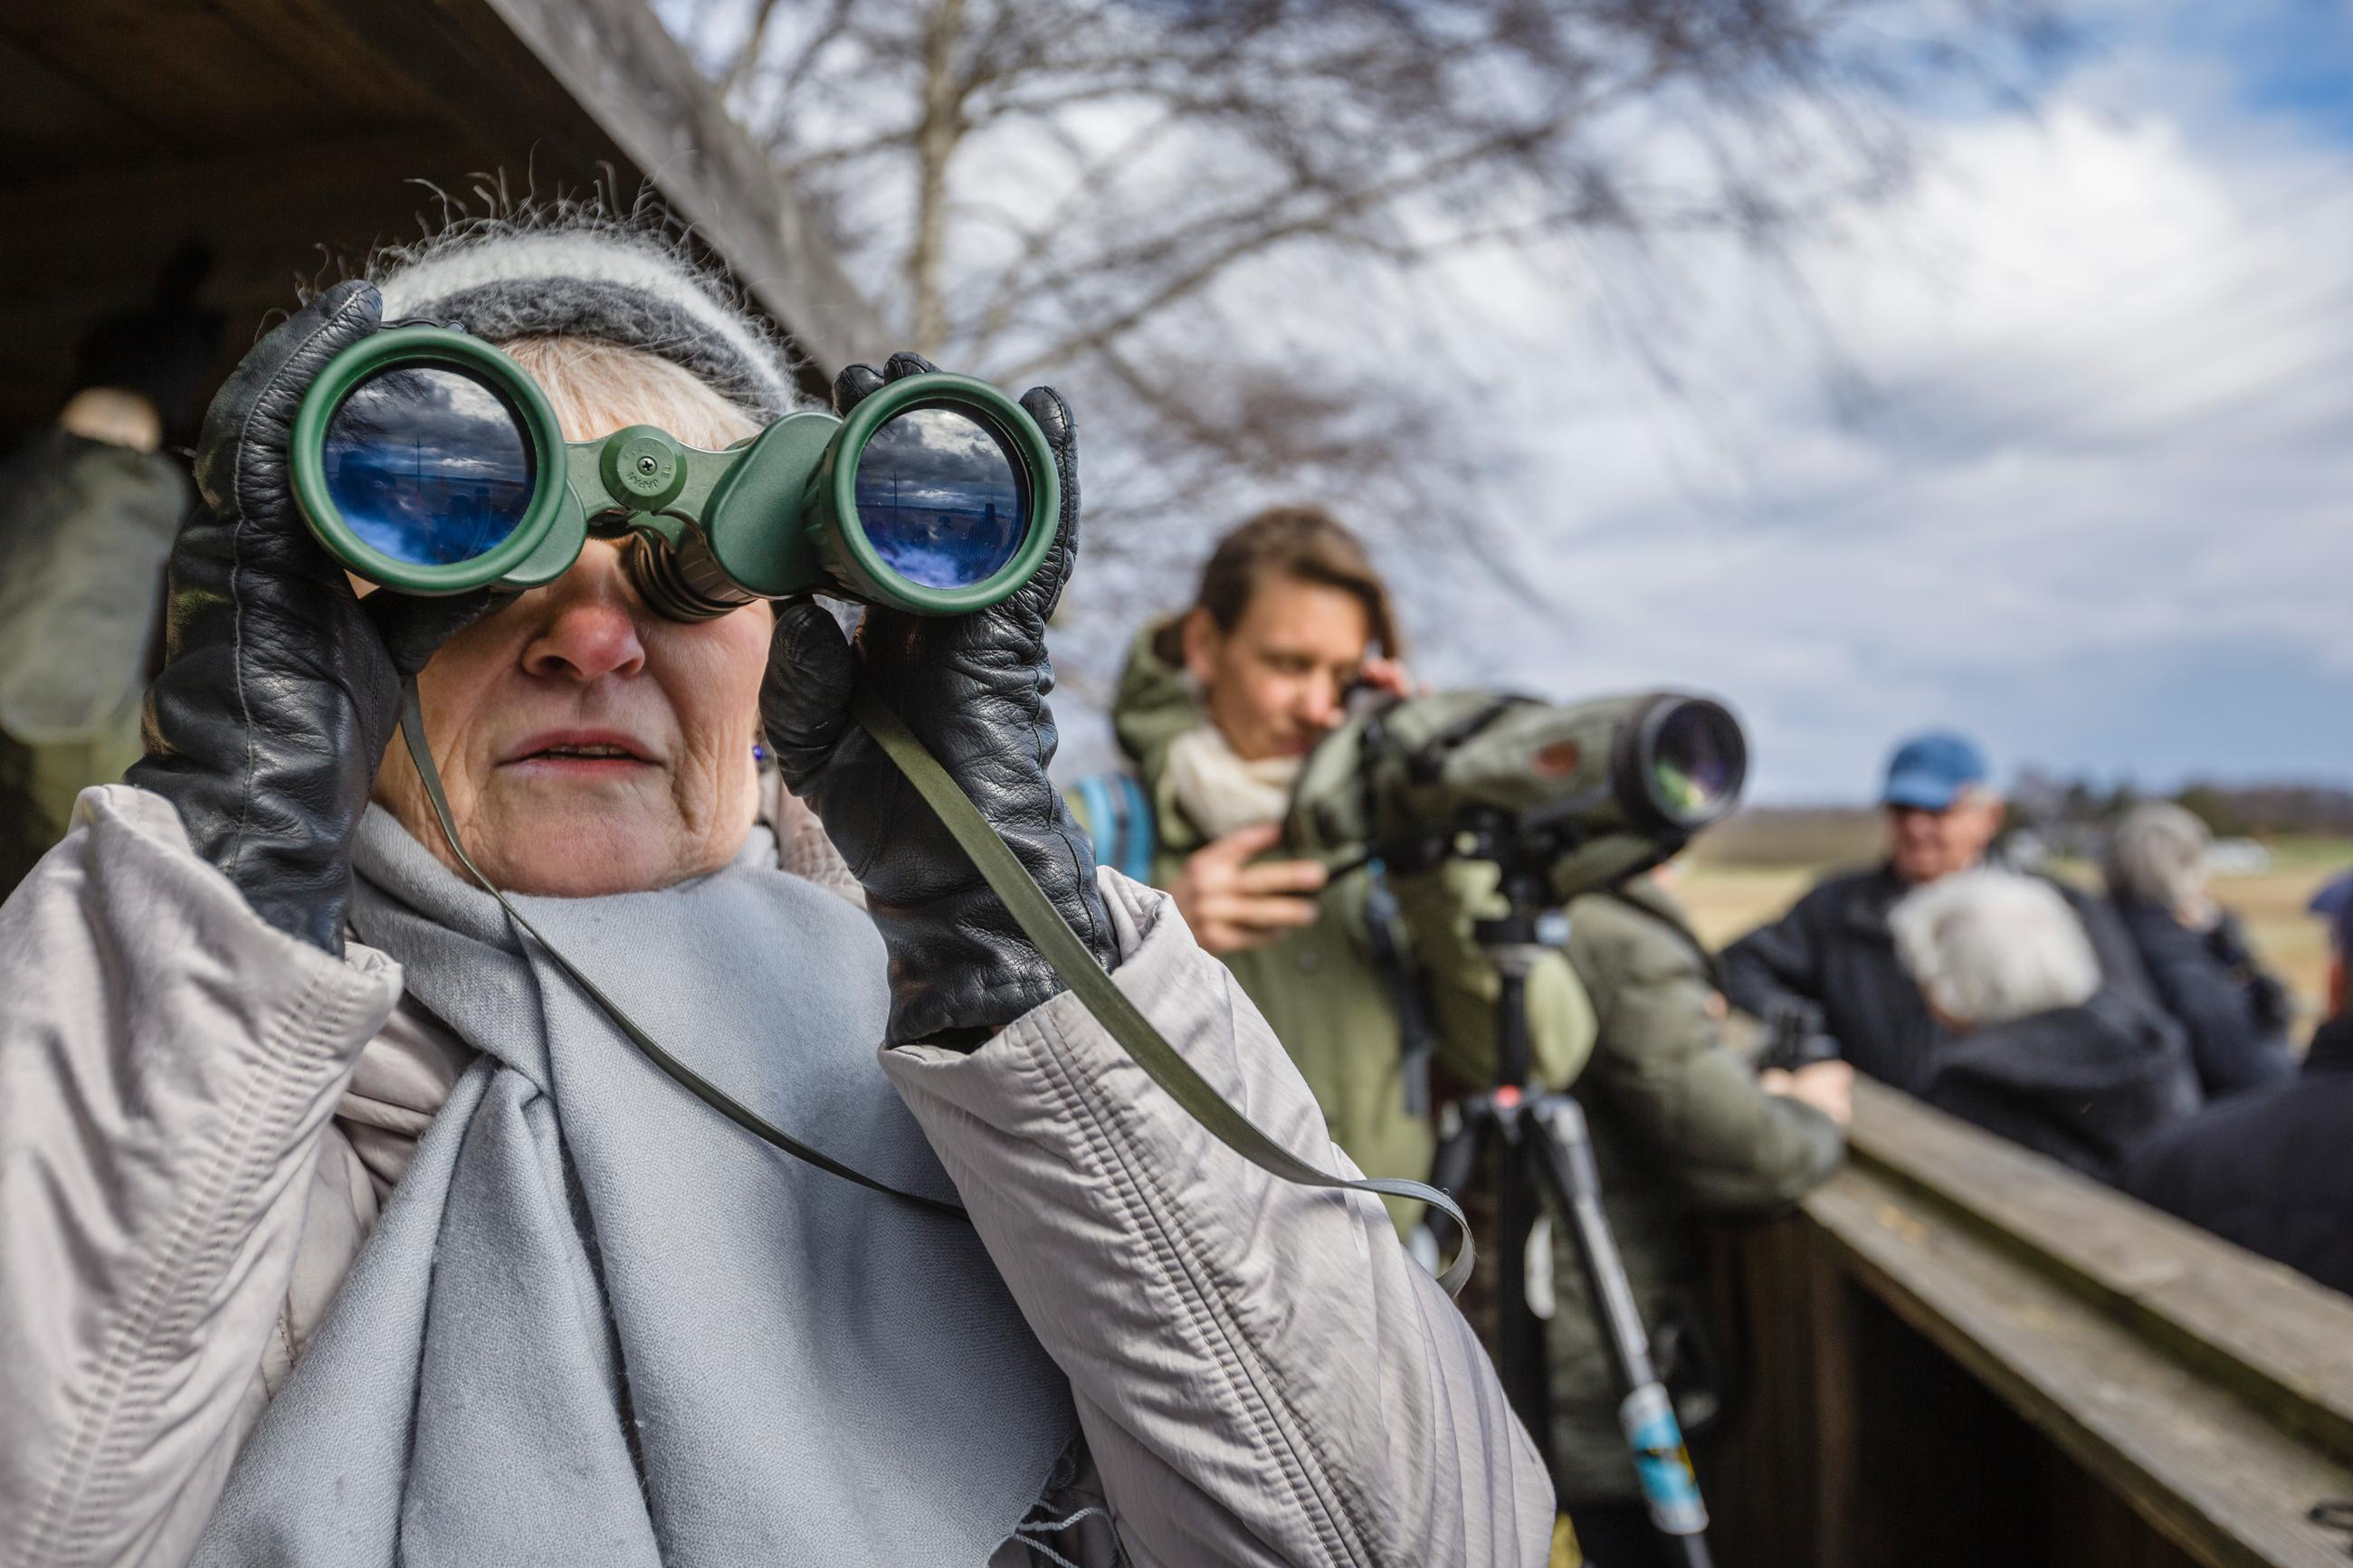 A woman birdwatching